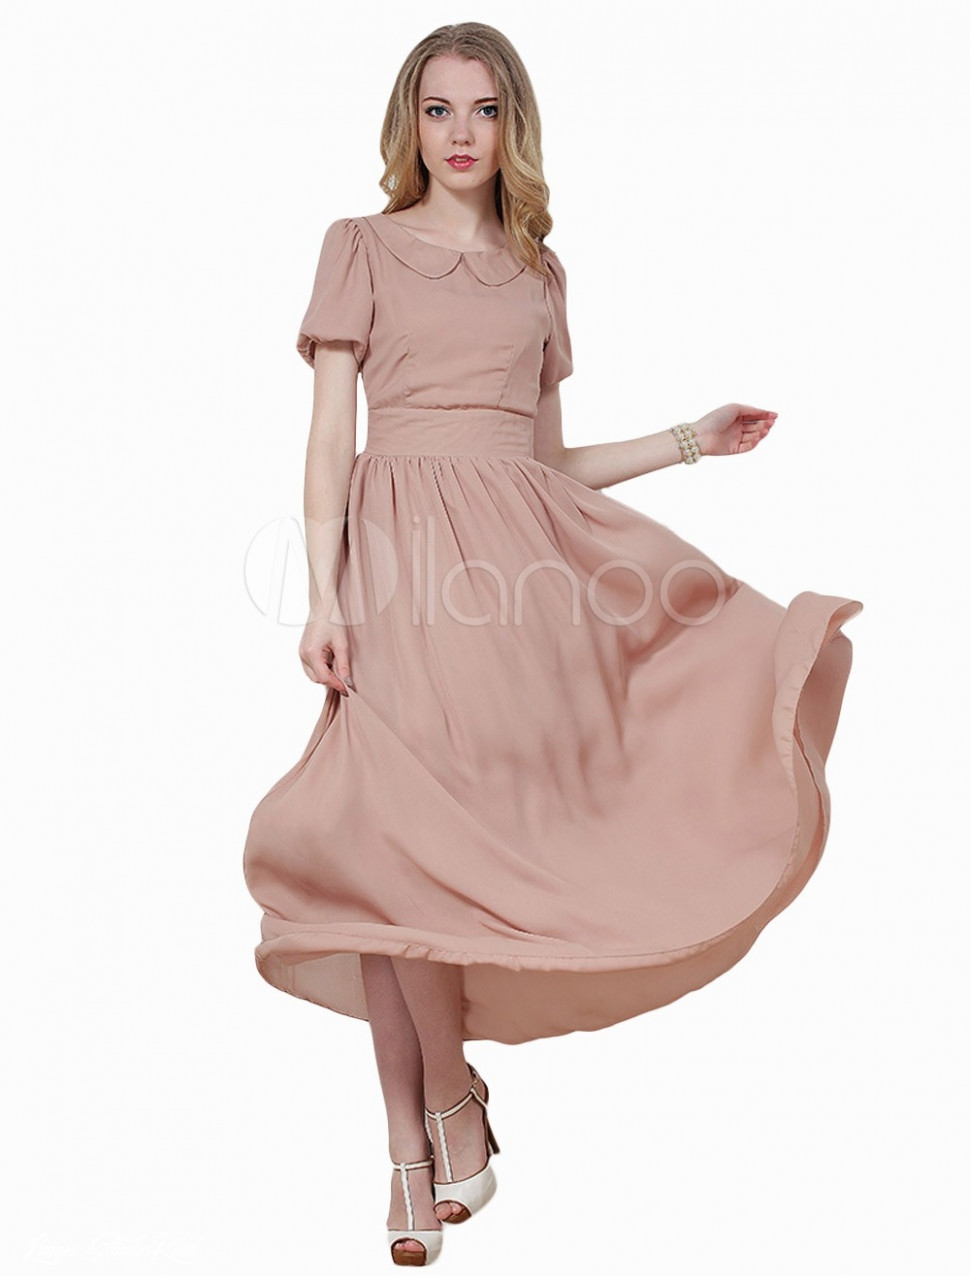 coolste langes schickes kleid design abendkleid